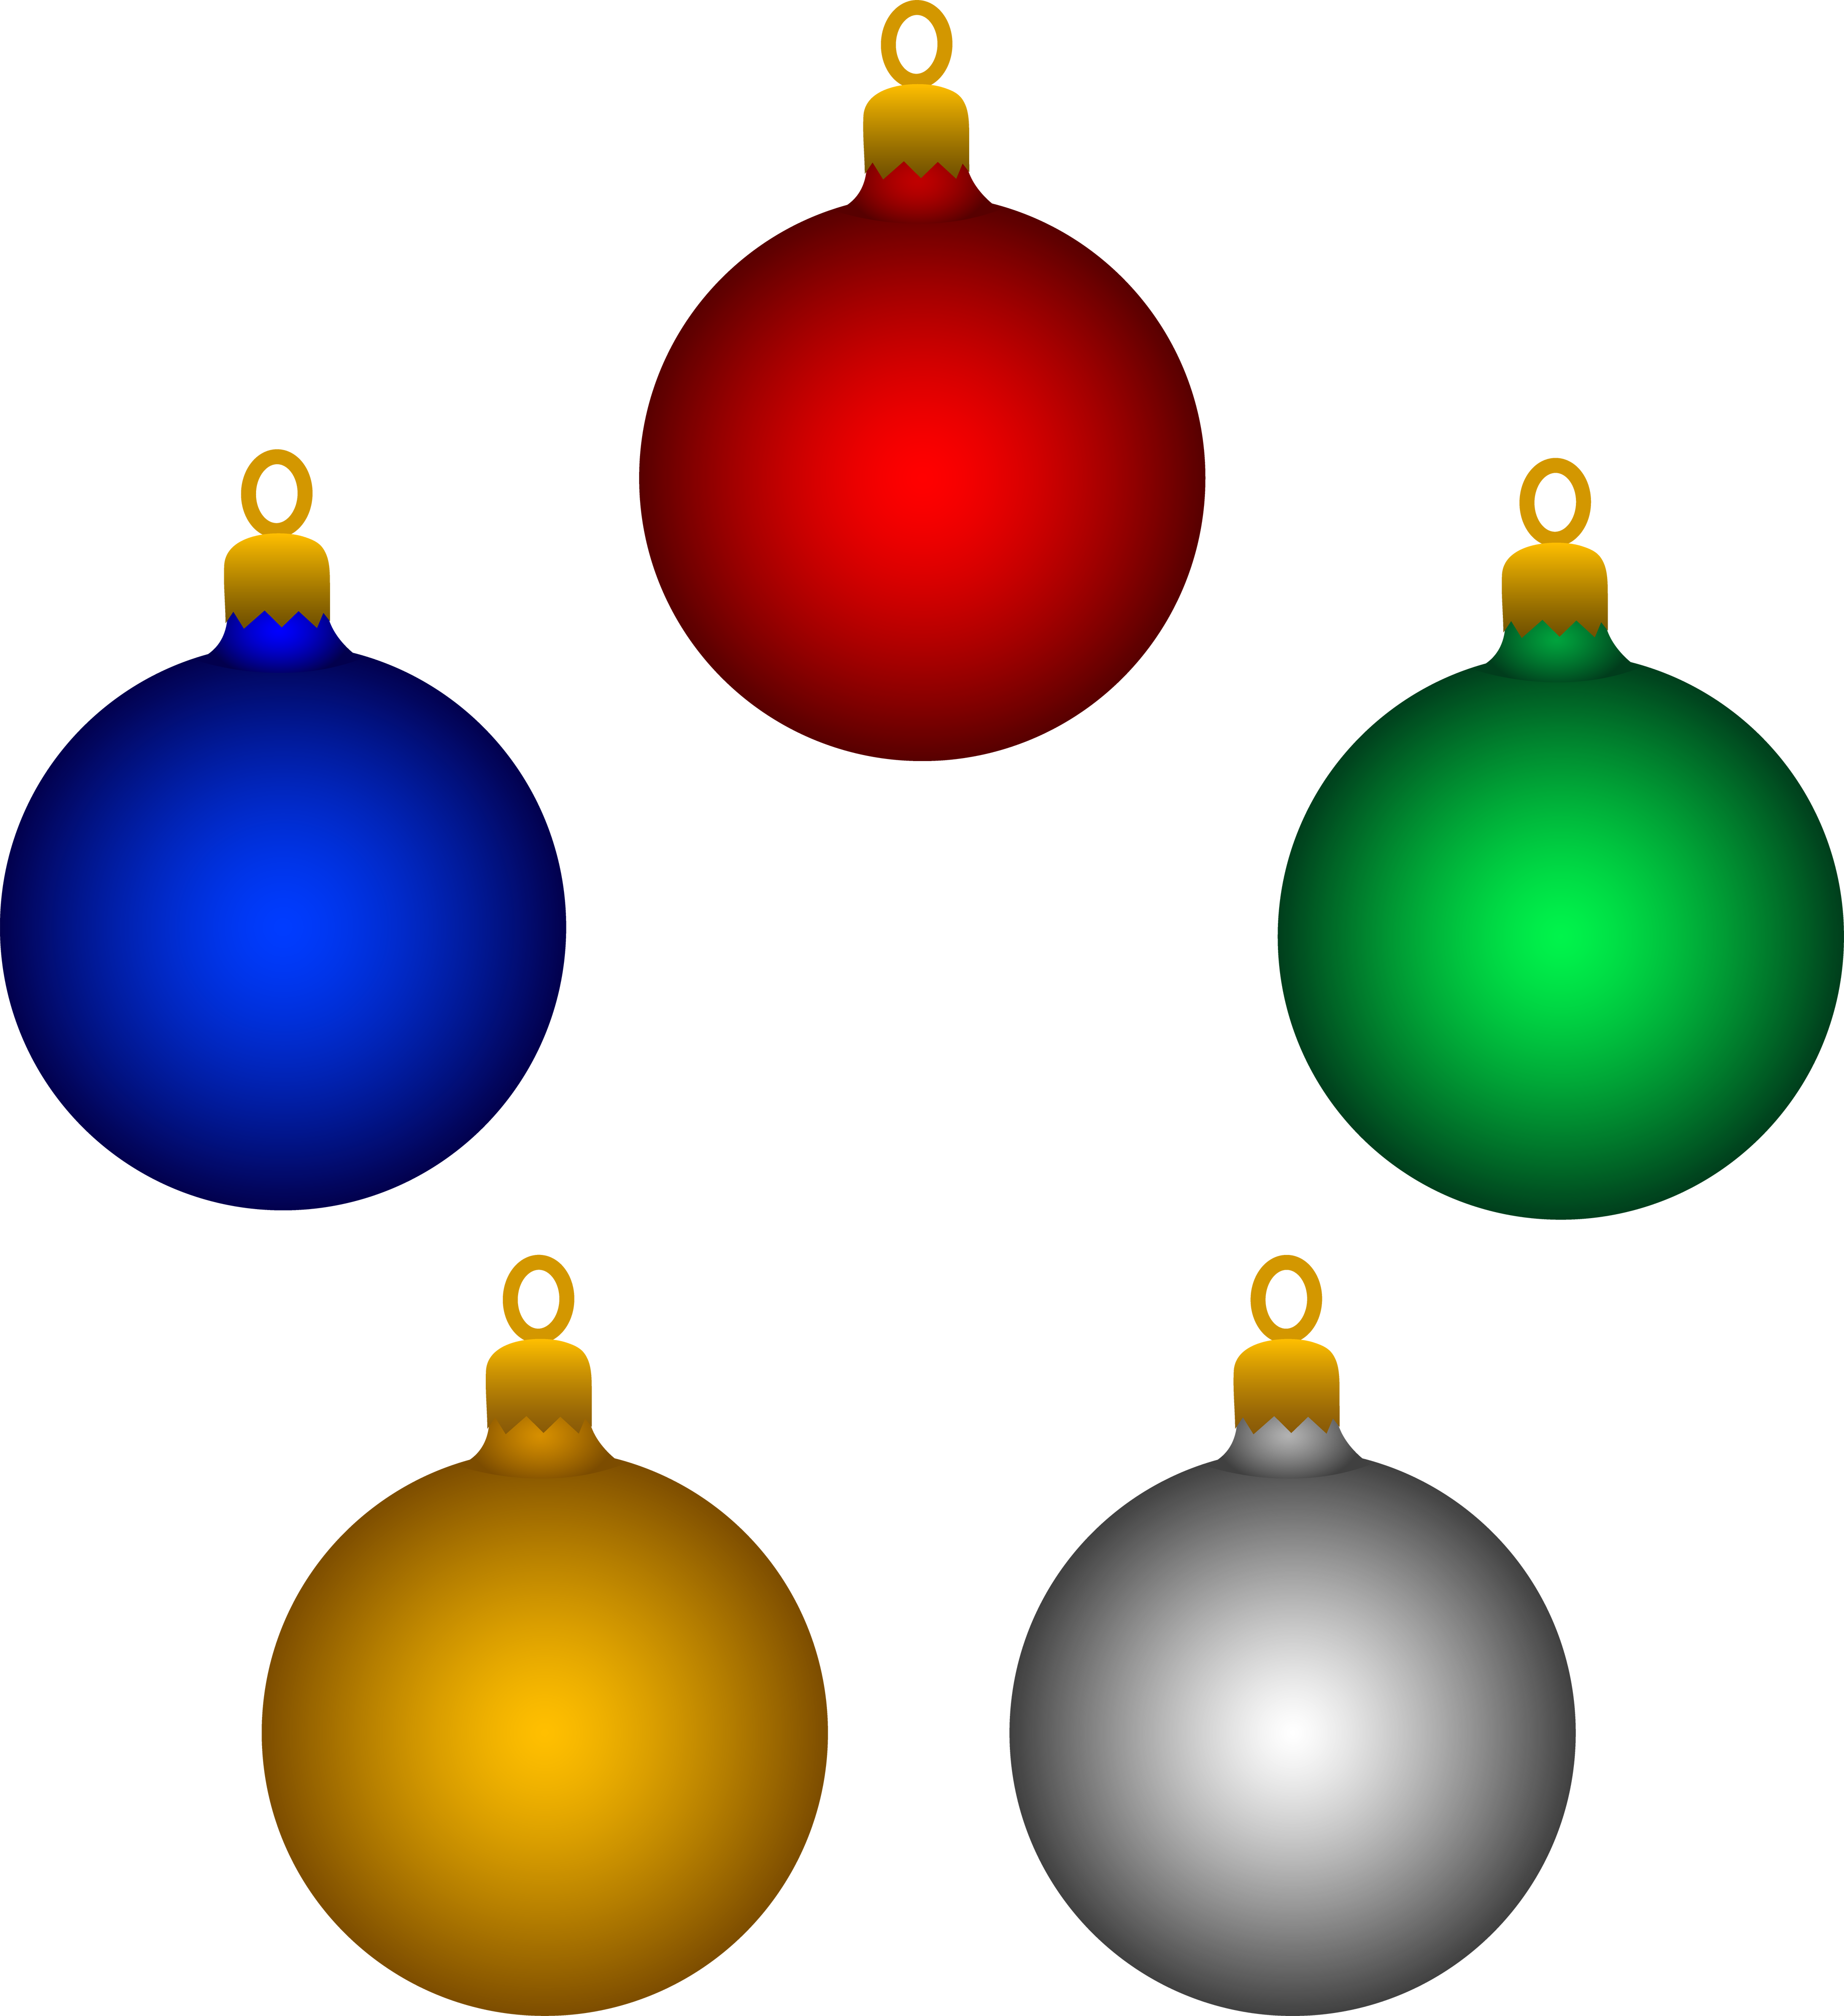 Free Christmas Ornament Clipart at GetDrawings.com | Free for ...